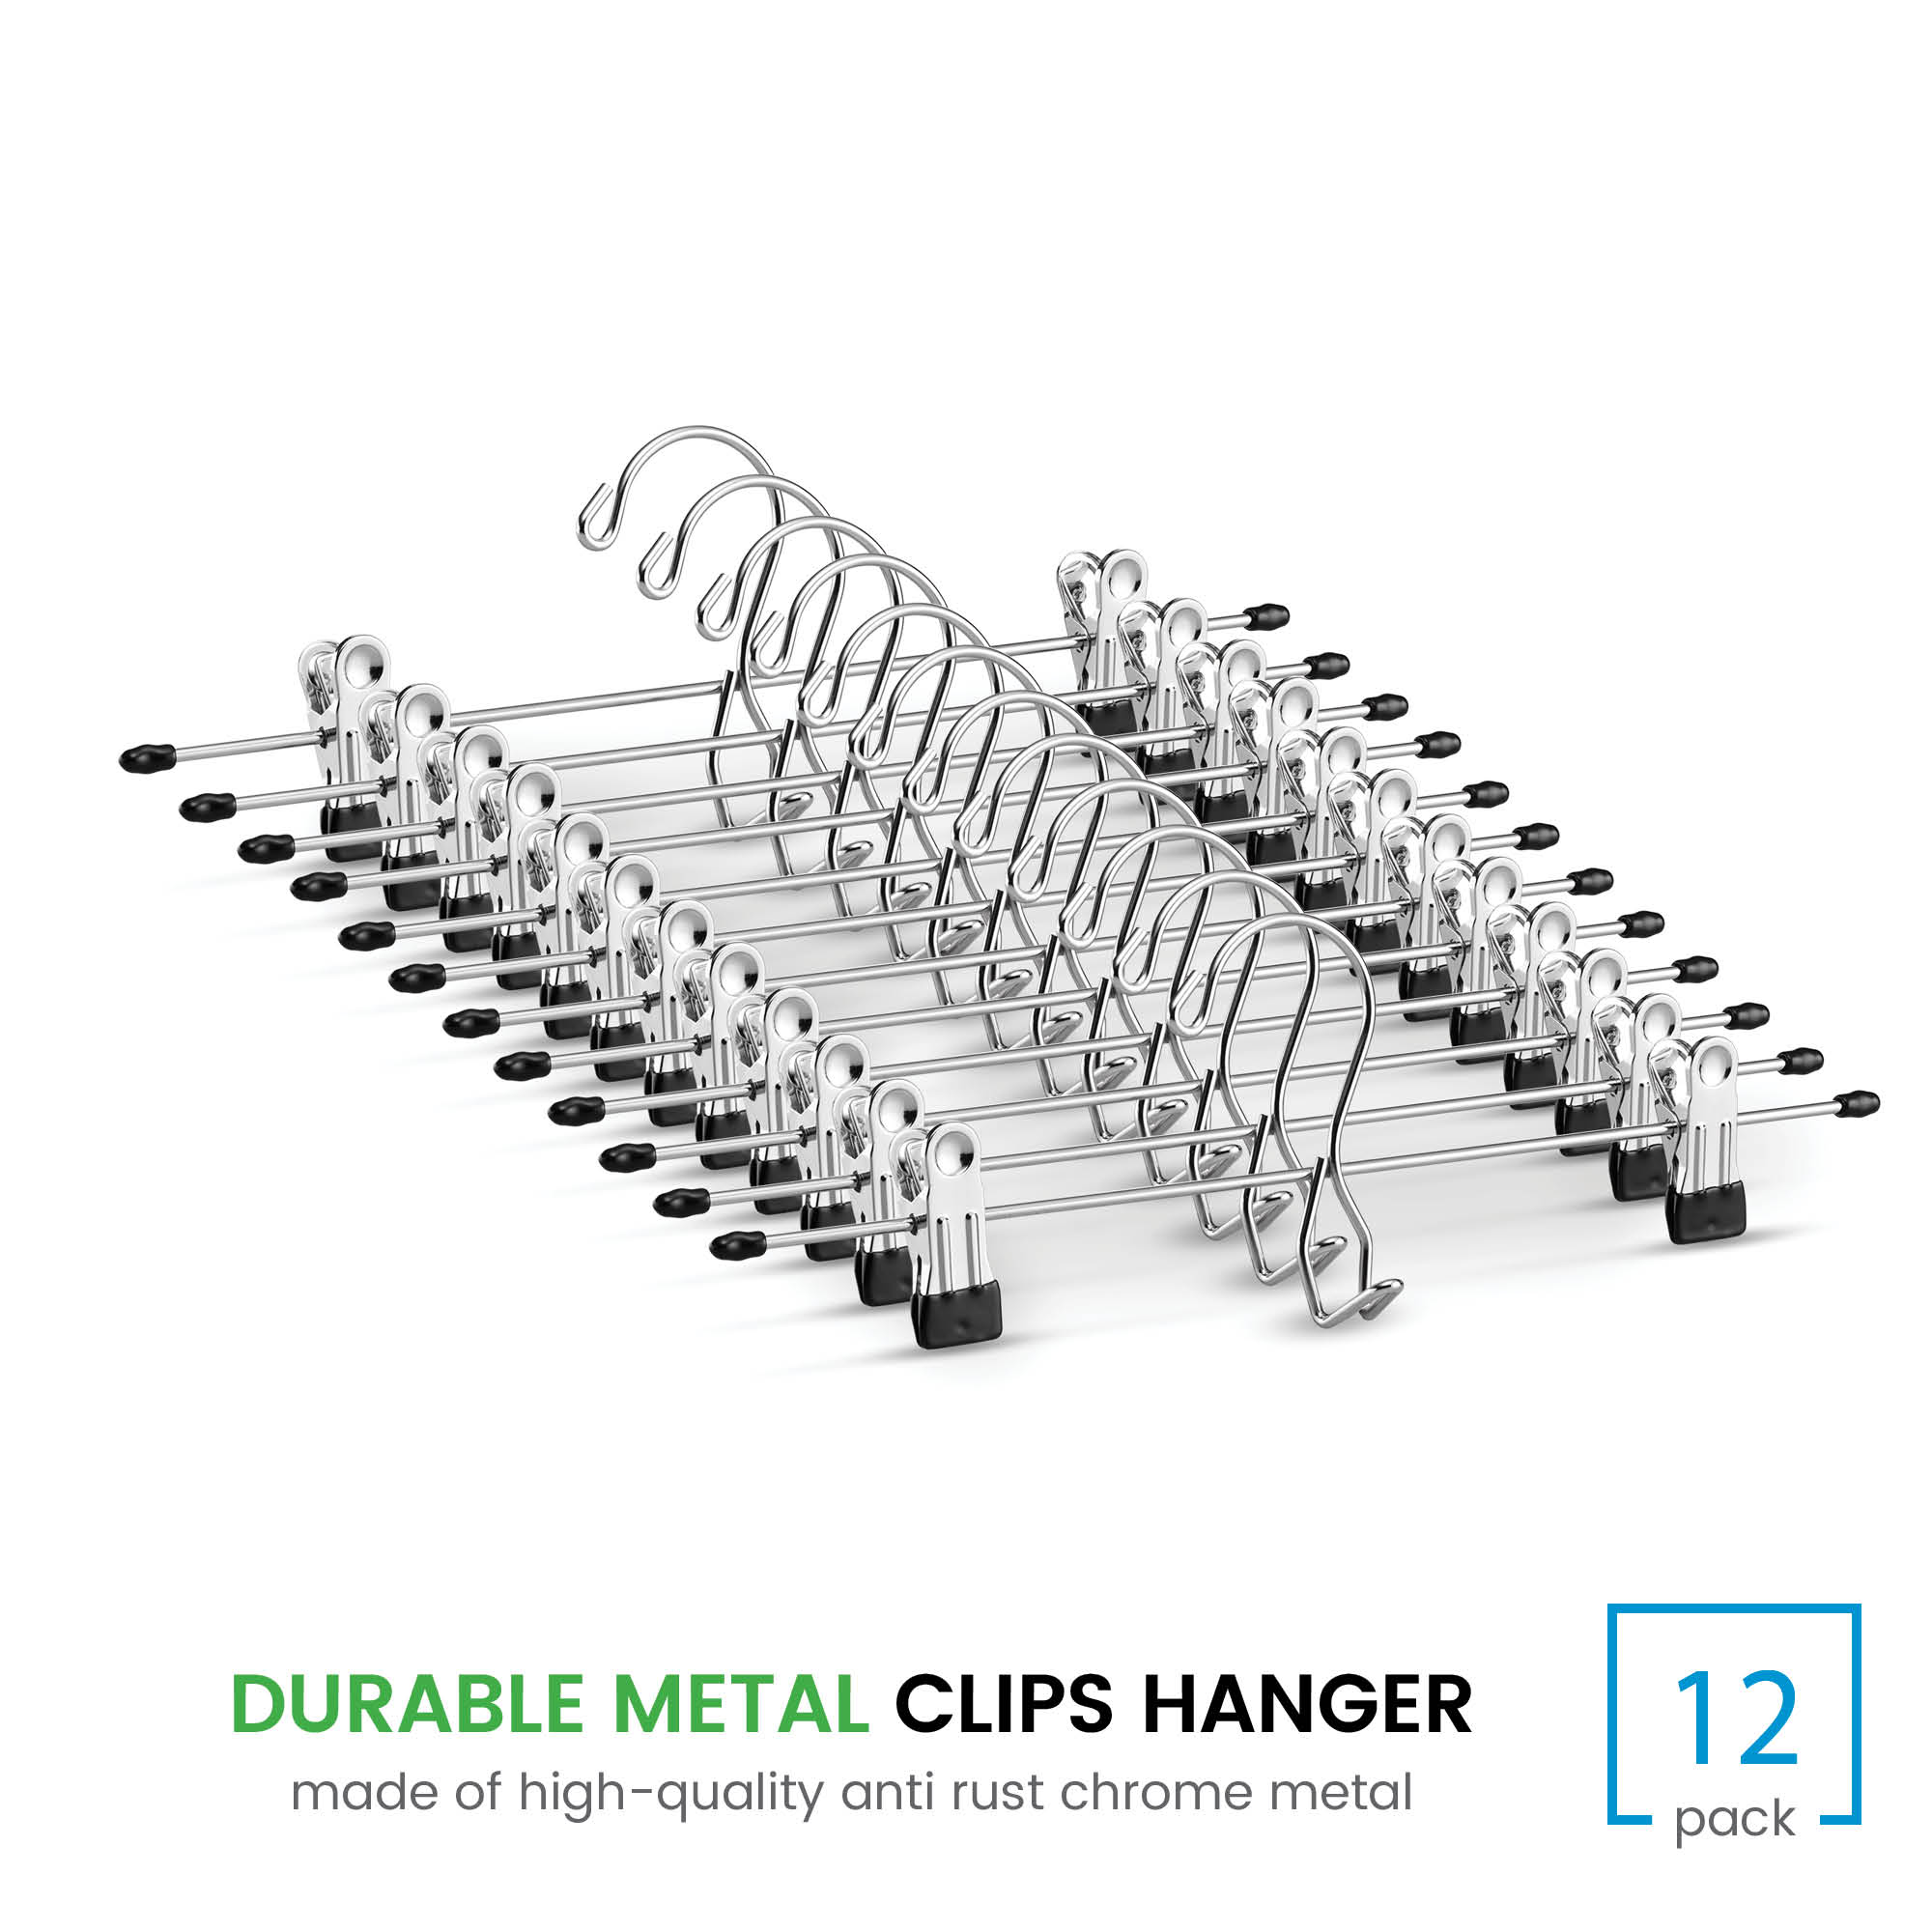 Heavy-Duty Add-On Skirt Hangers with Clips 12 Pack Adjustable Clip Pants Hanger Multi Stackable Add on Hangers